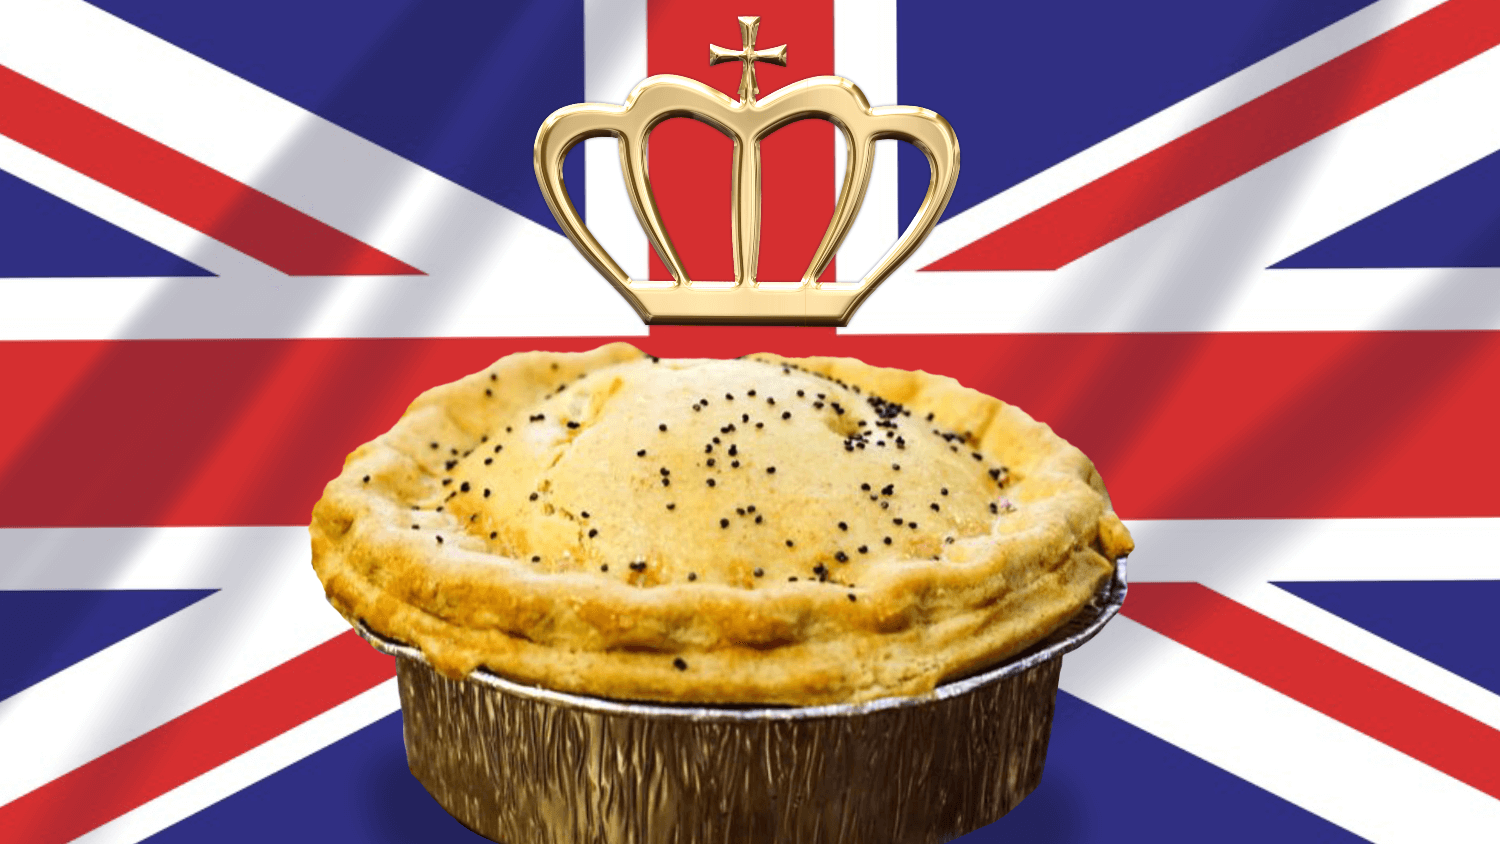 A Vegan Pie Just Won a Contest Held By the Pork Association